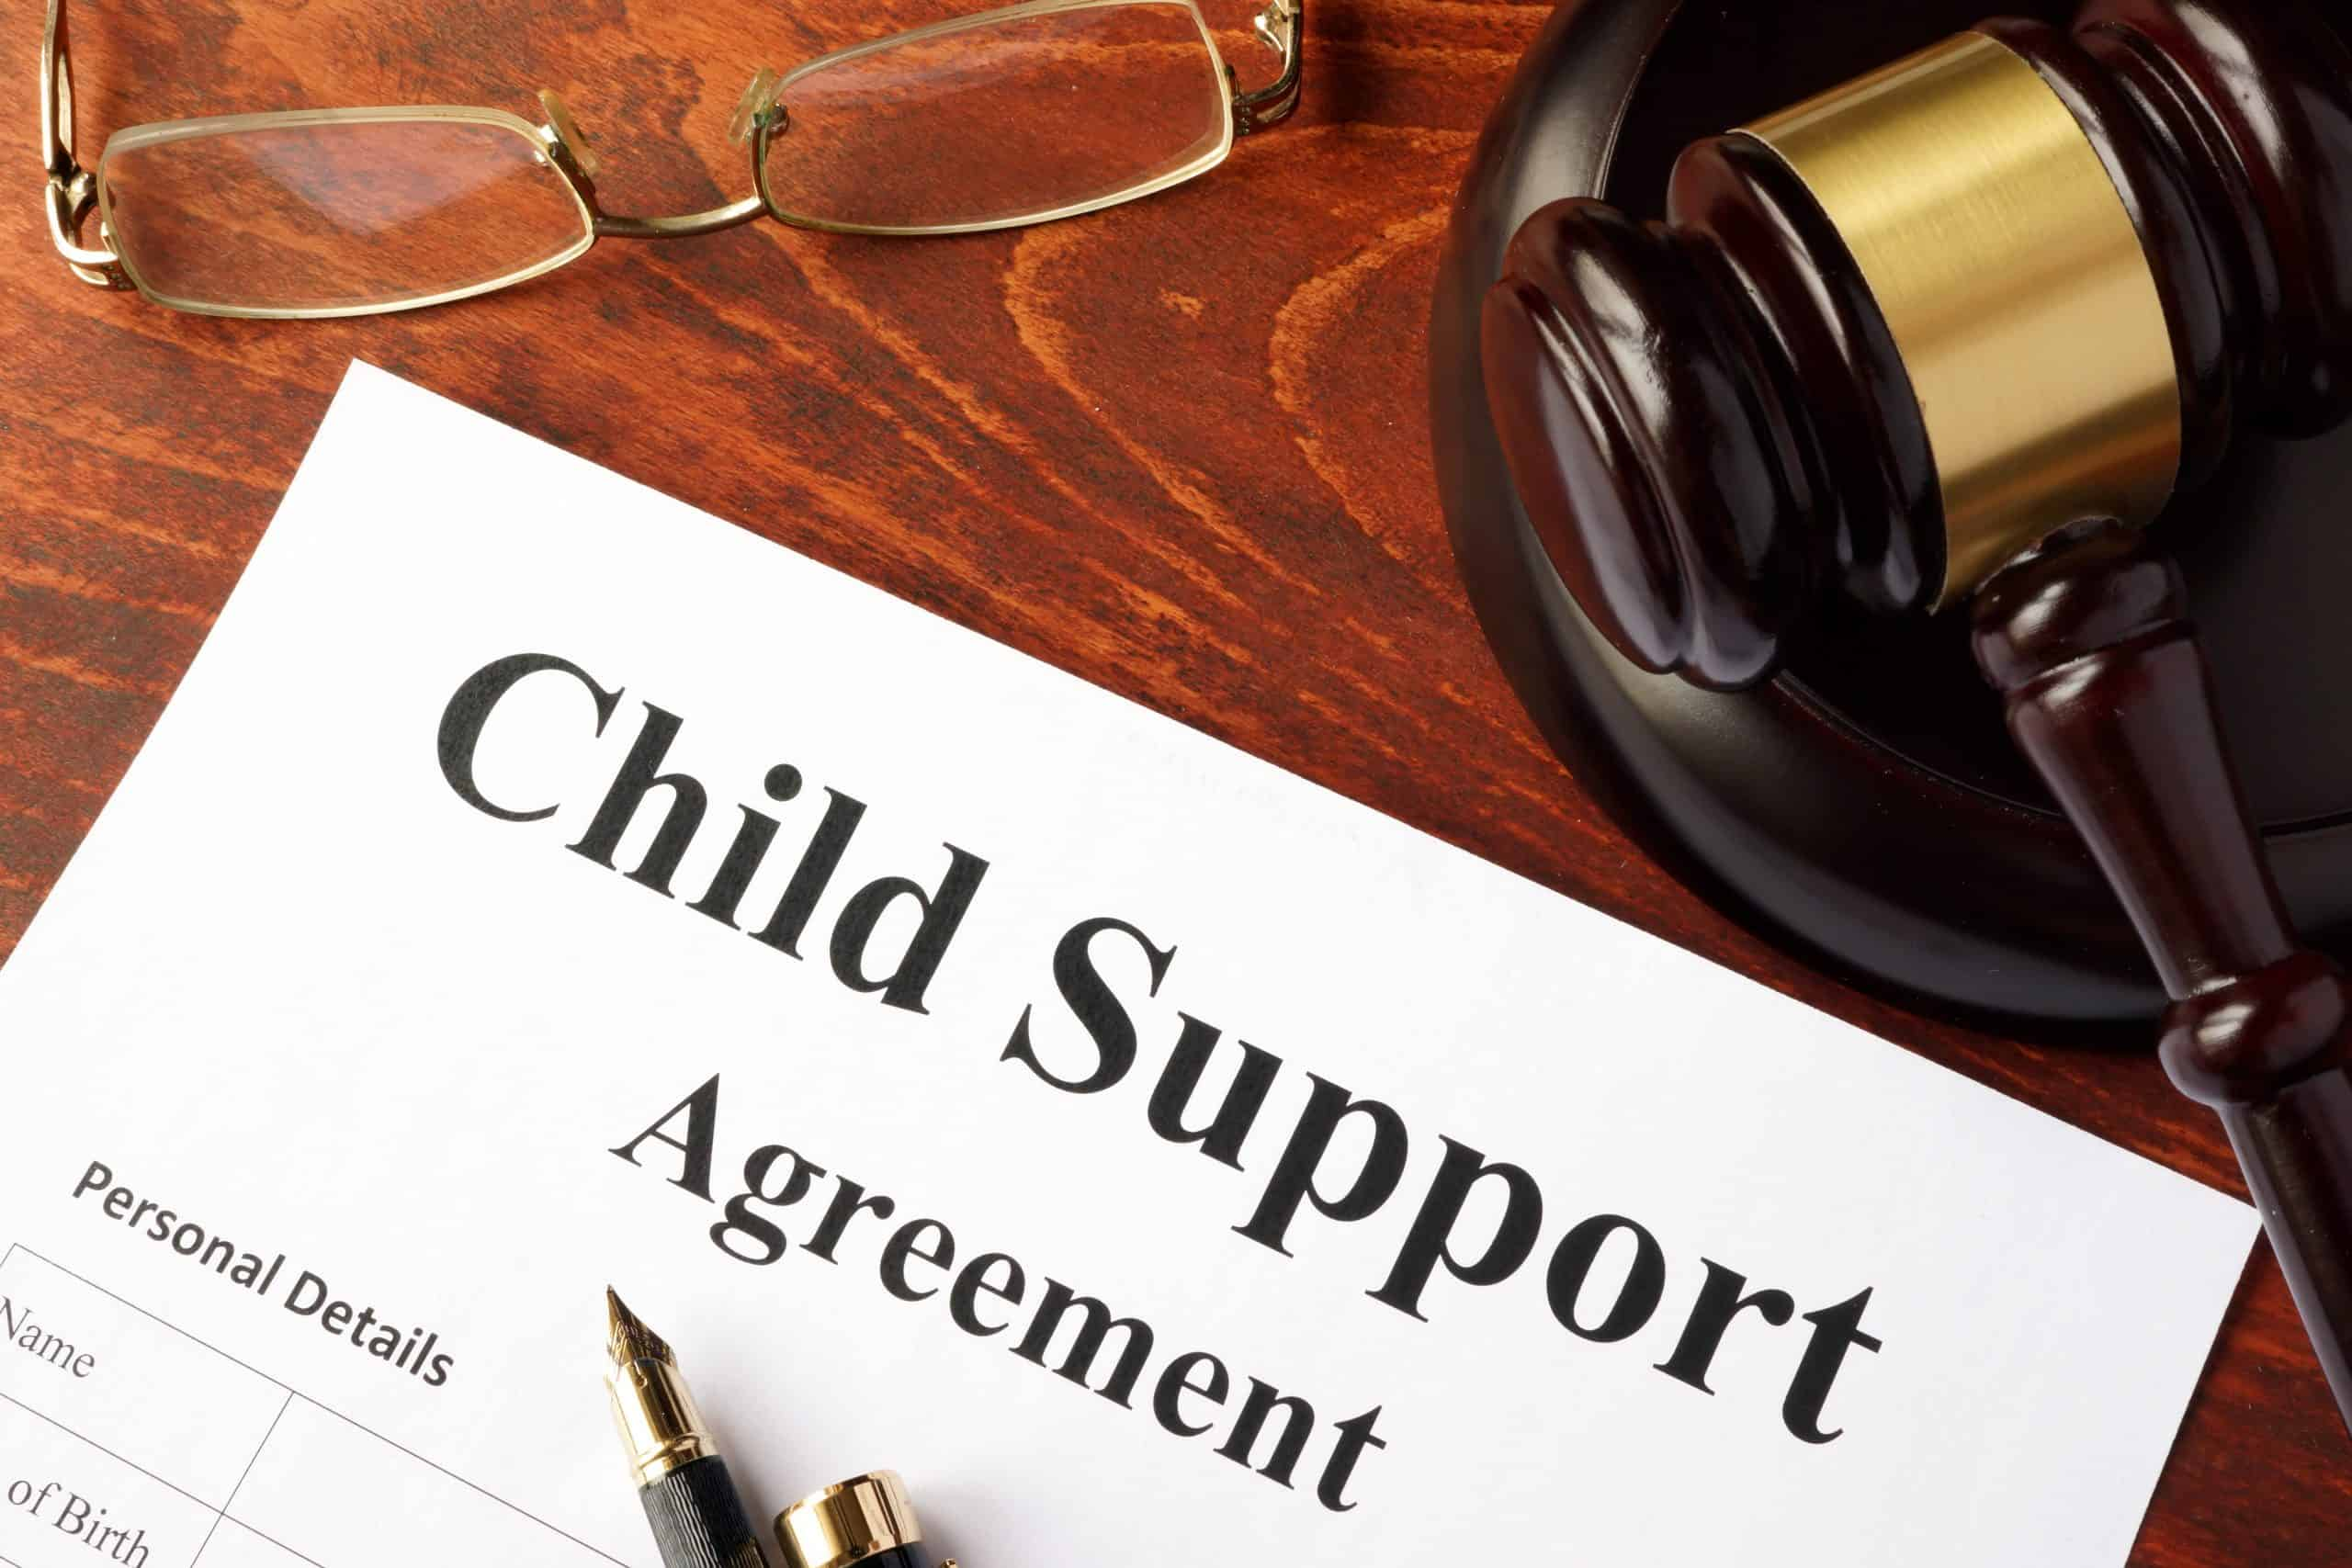 Child Support Agreement with a gavel and glasses on a table